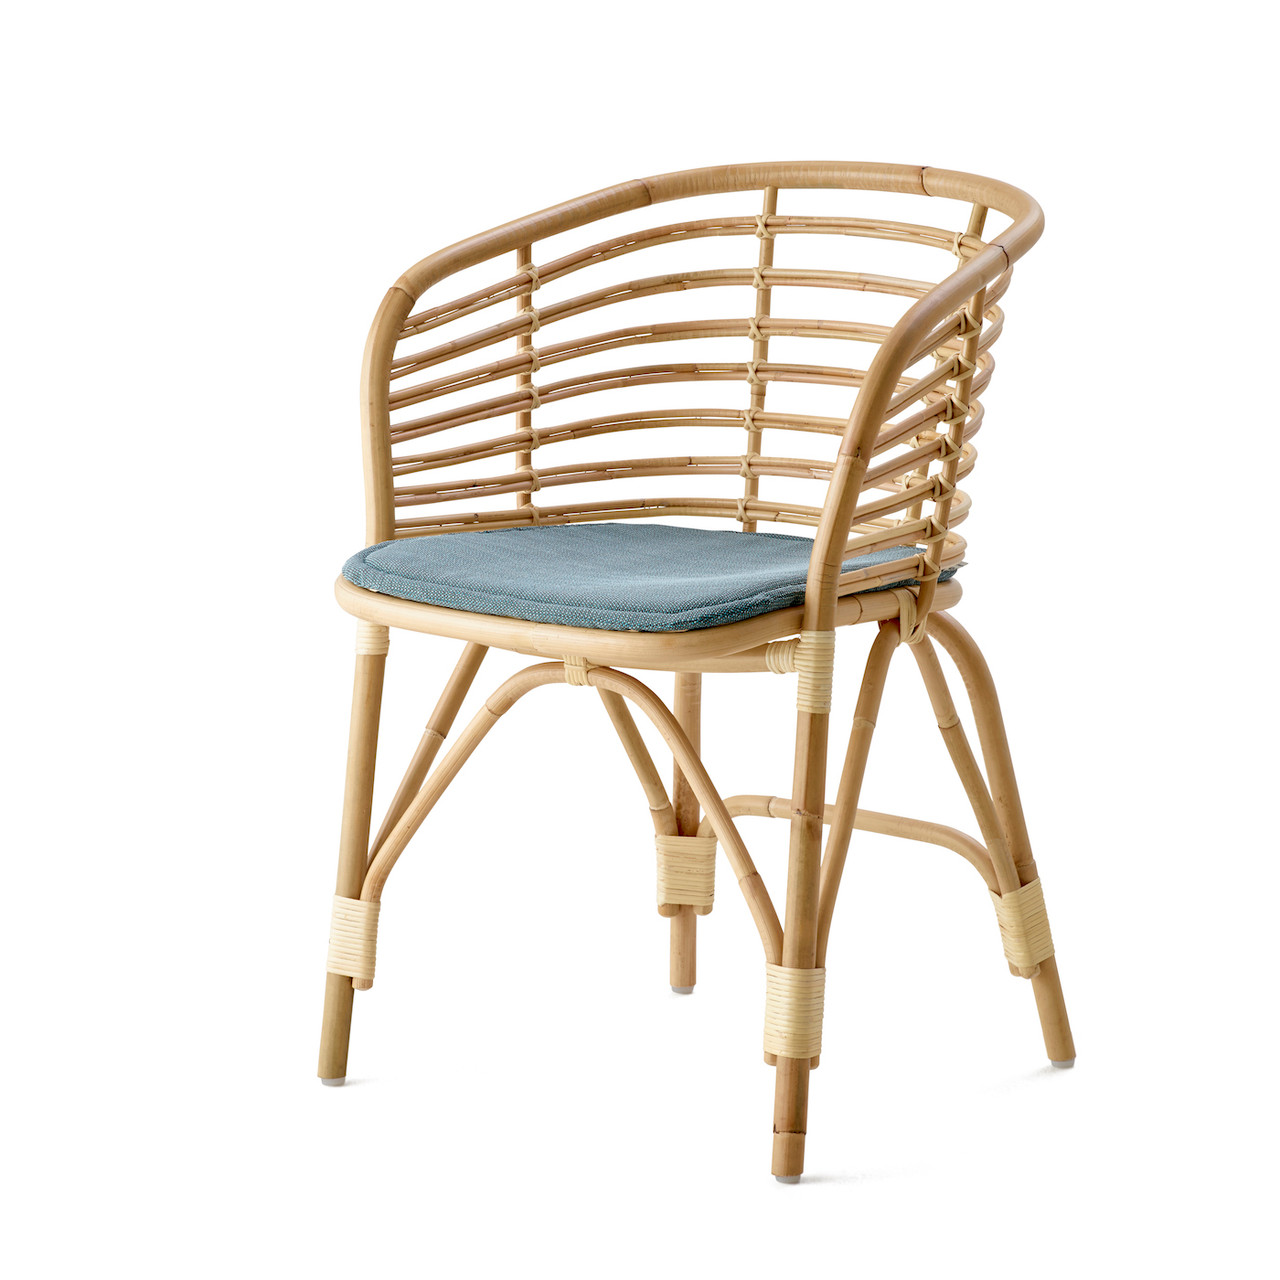 Superieur Cane Line Blend Rattan Dining Chair With Turquoise Grey Cushion